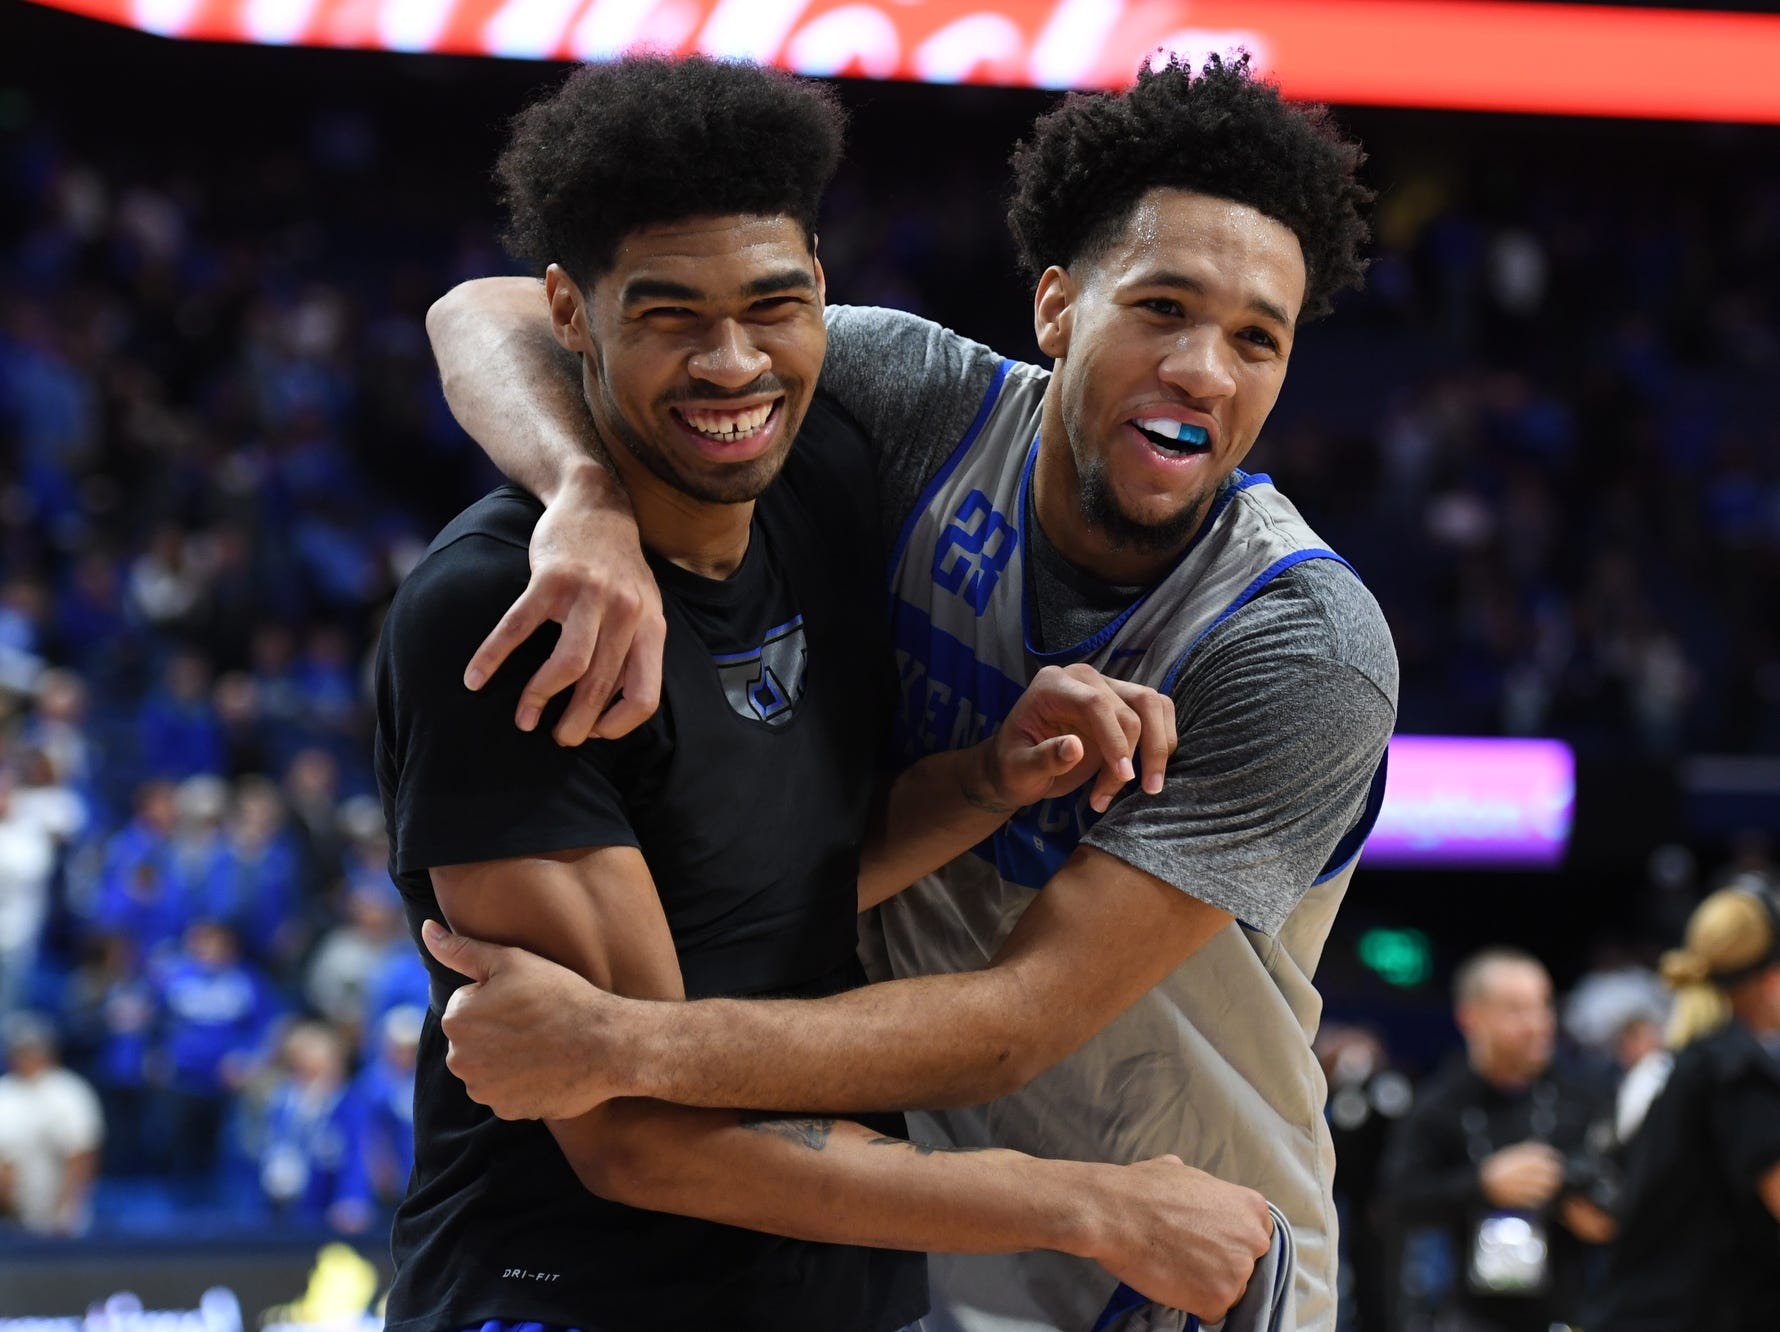 UK forwards Nick Richards and EJ Montgomery hug after the University of Kentucky mens basketball Blue/White game at Rupp Arena in Lexington, Kentucky on Sunday, October 21, 2018.